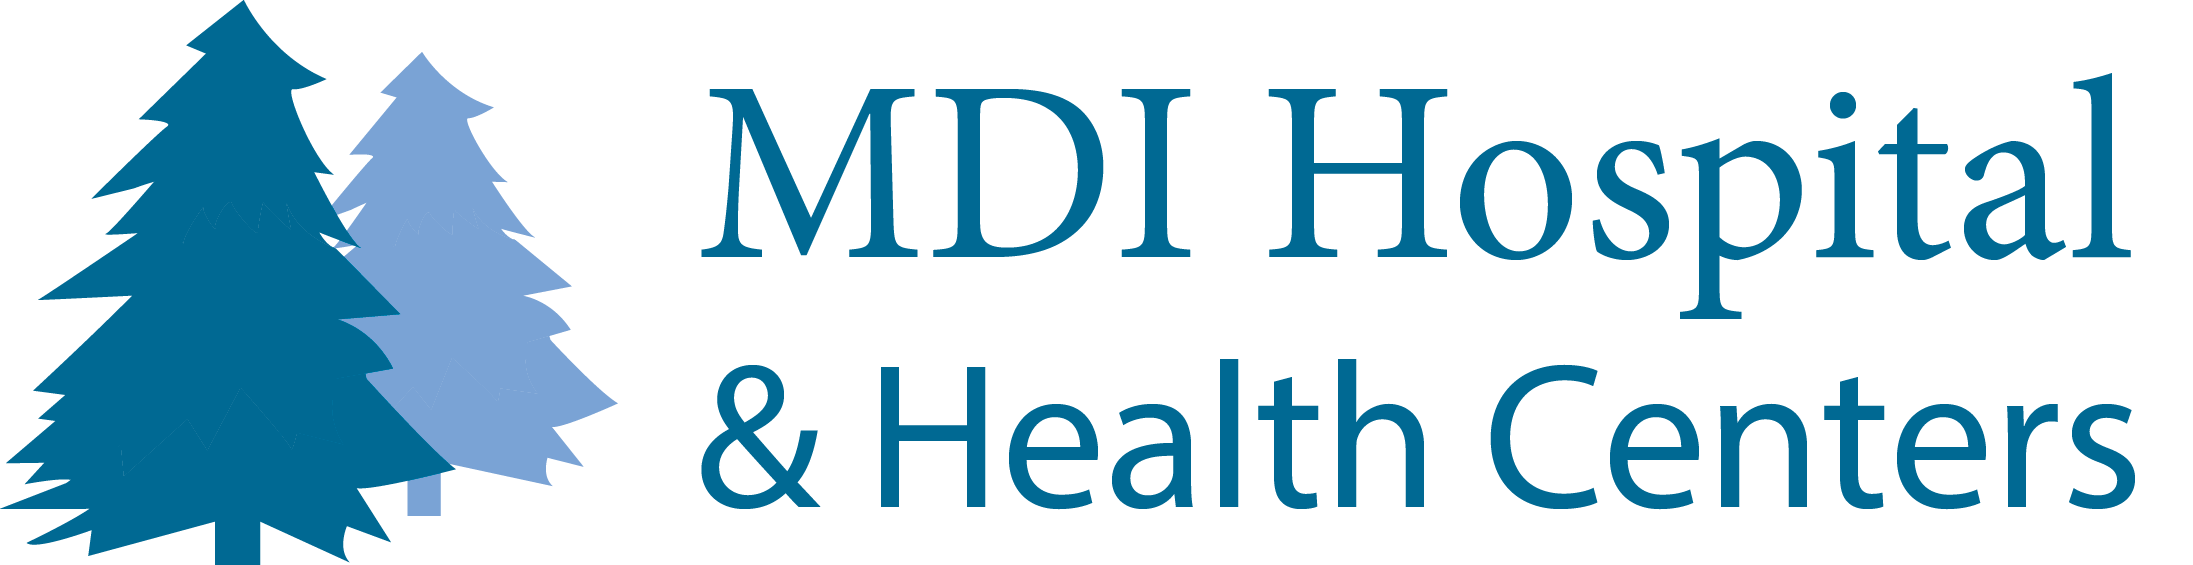 Mdi Hospital S Family Health Center Merges With Cadillac Family